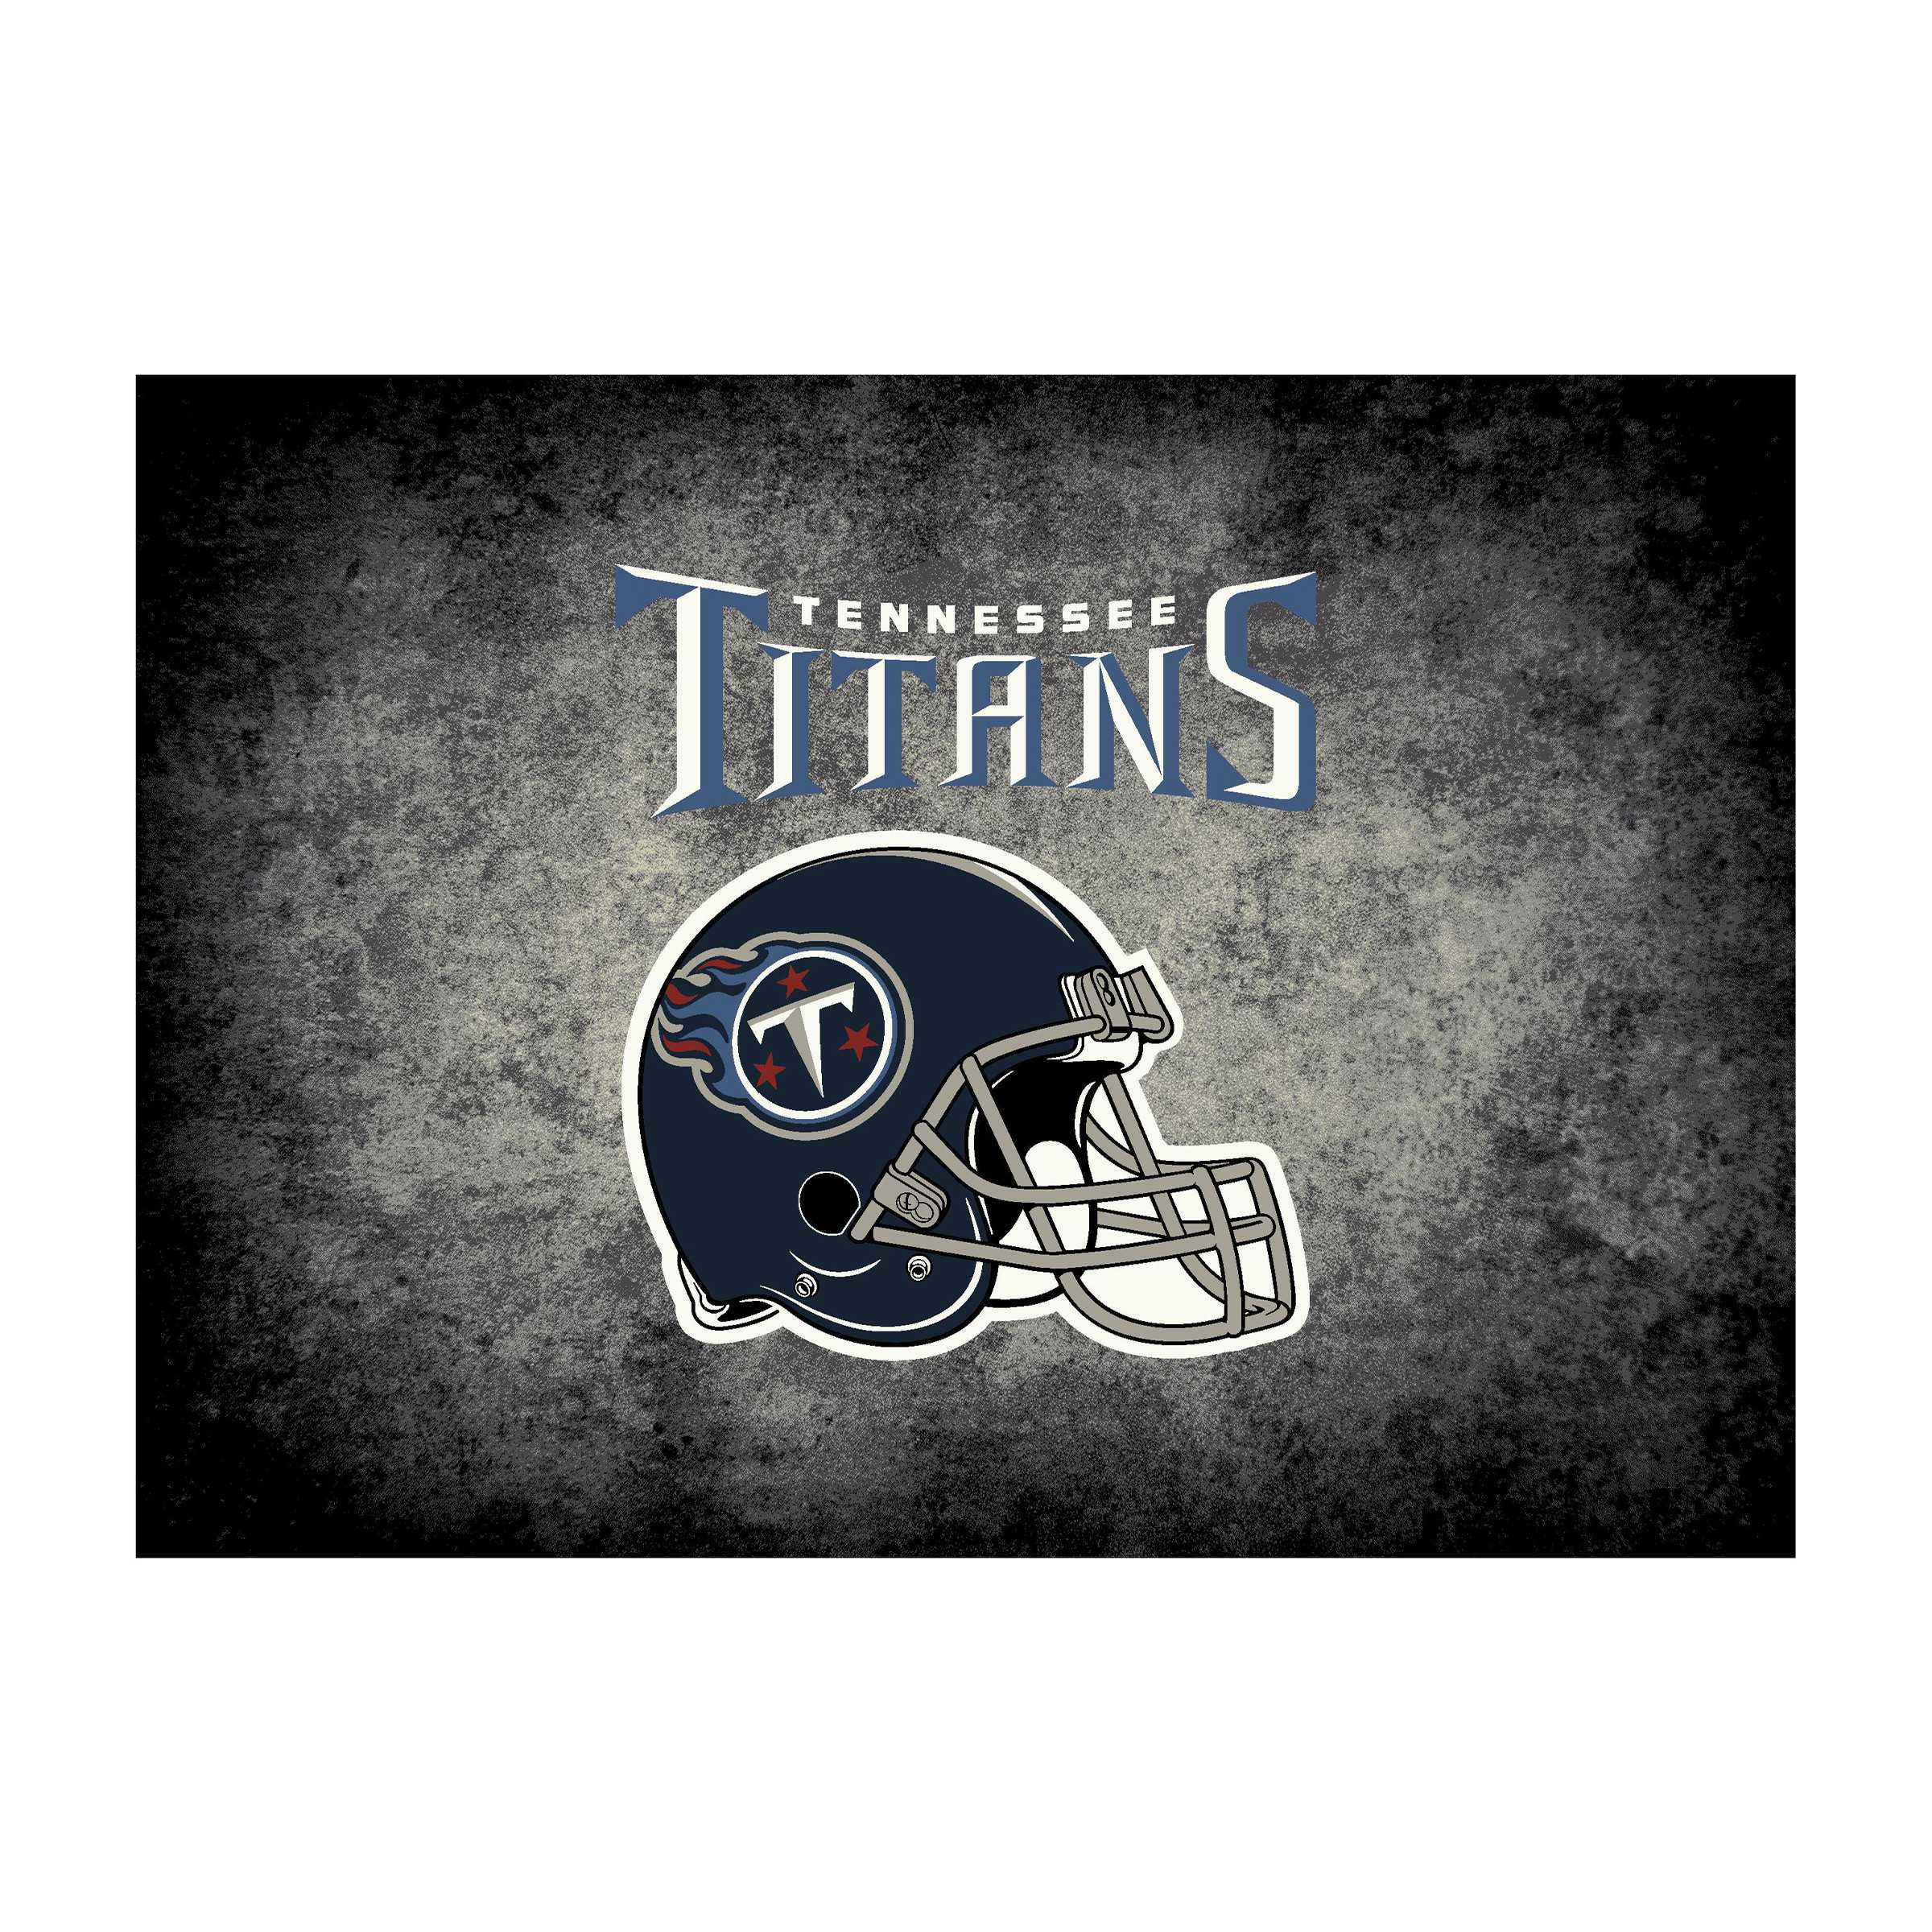 TENNESSEE TITANS 8X11 DISTRESSED RUG